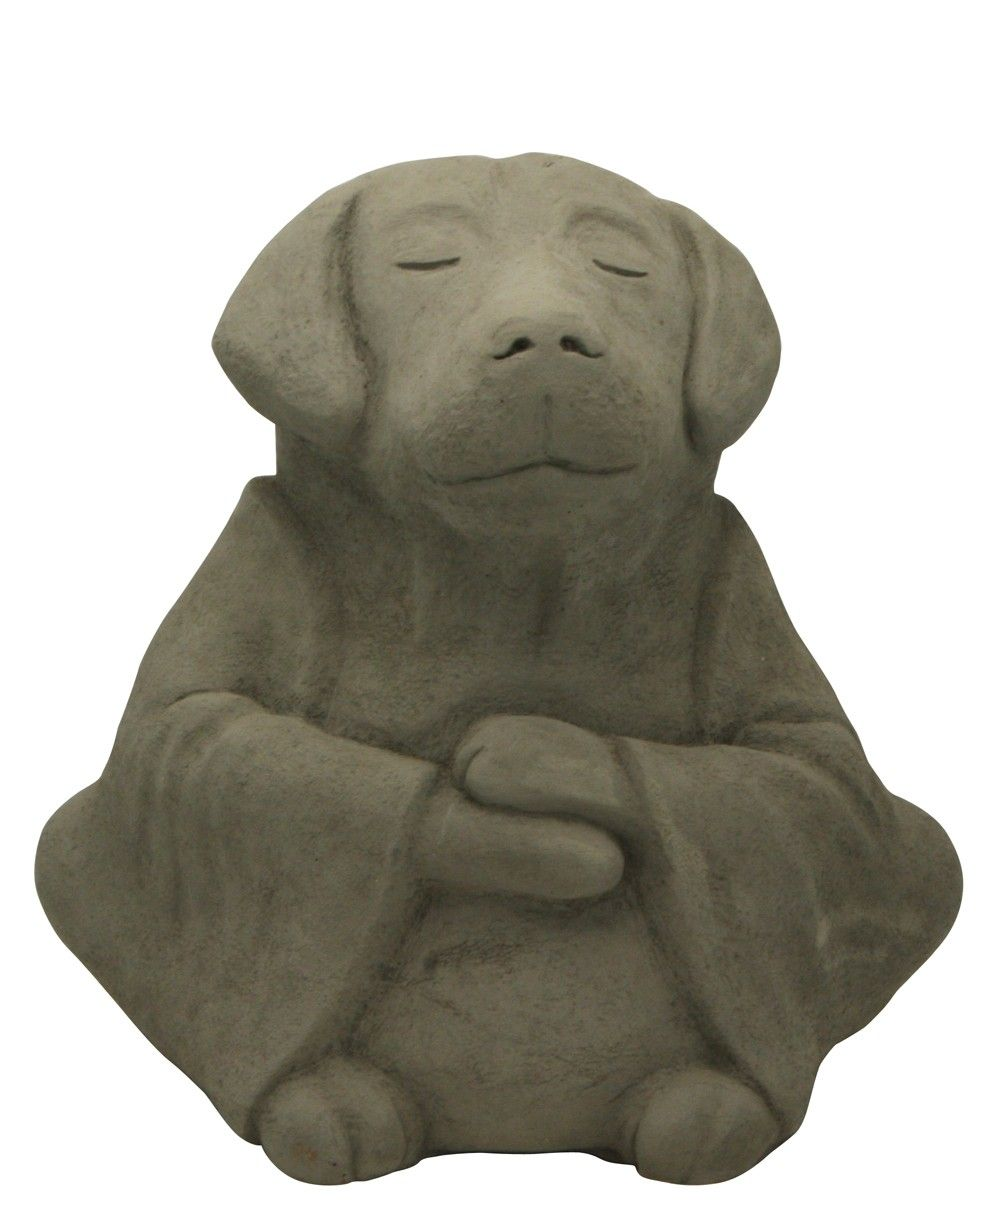 meditating dog zen garden statues animal sculptures garden pinterest garden statues. Black Bedroom Furniture Sets. Home Design Ideas